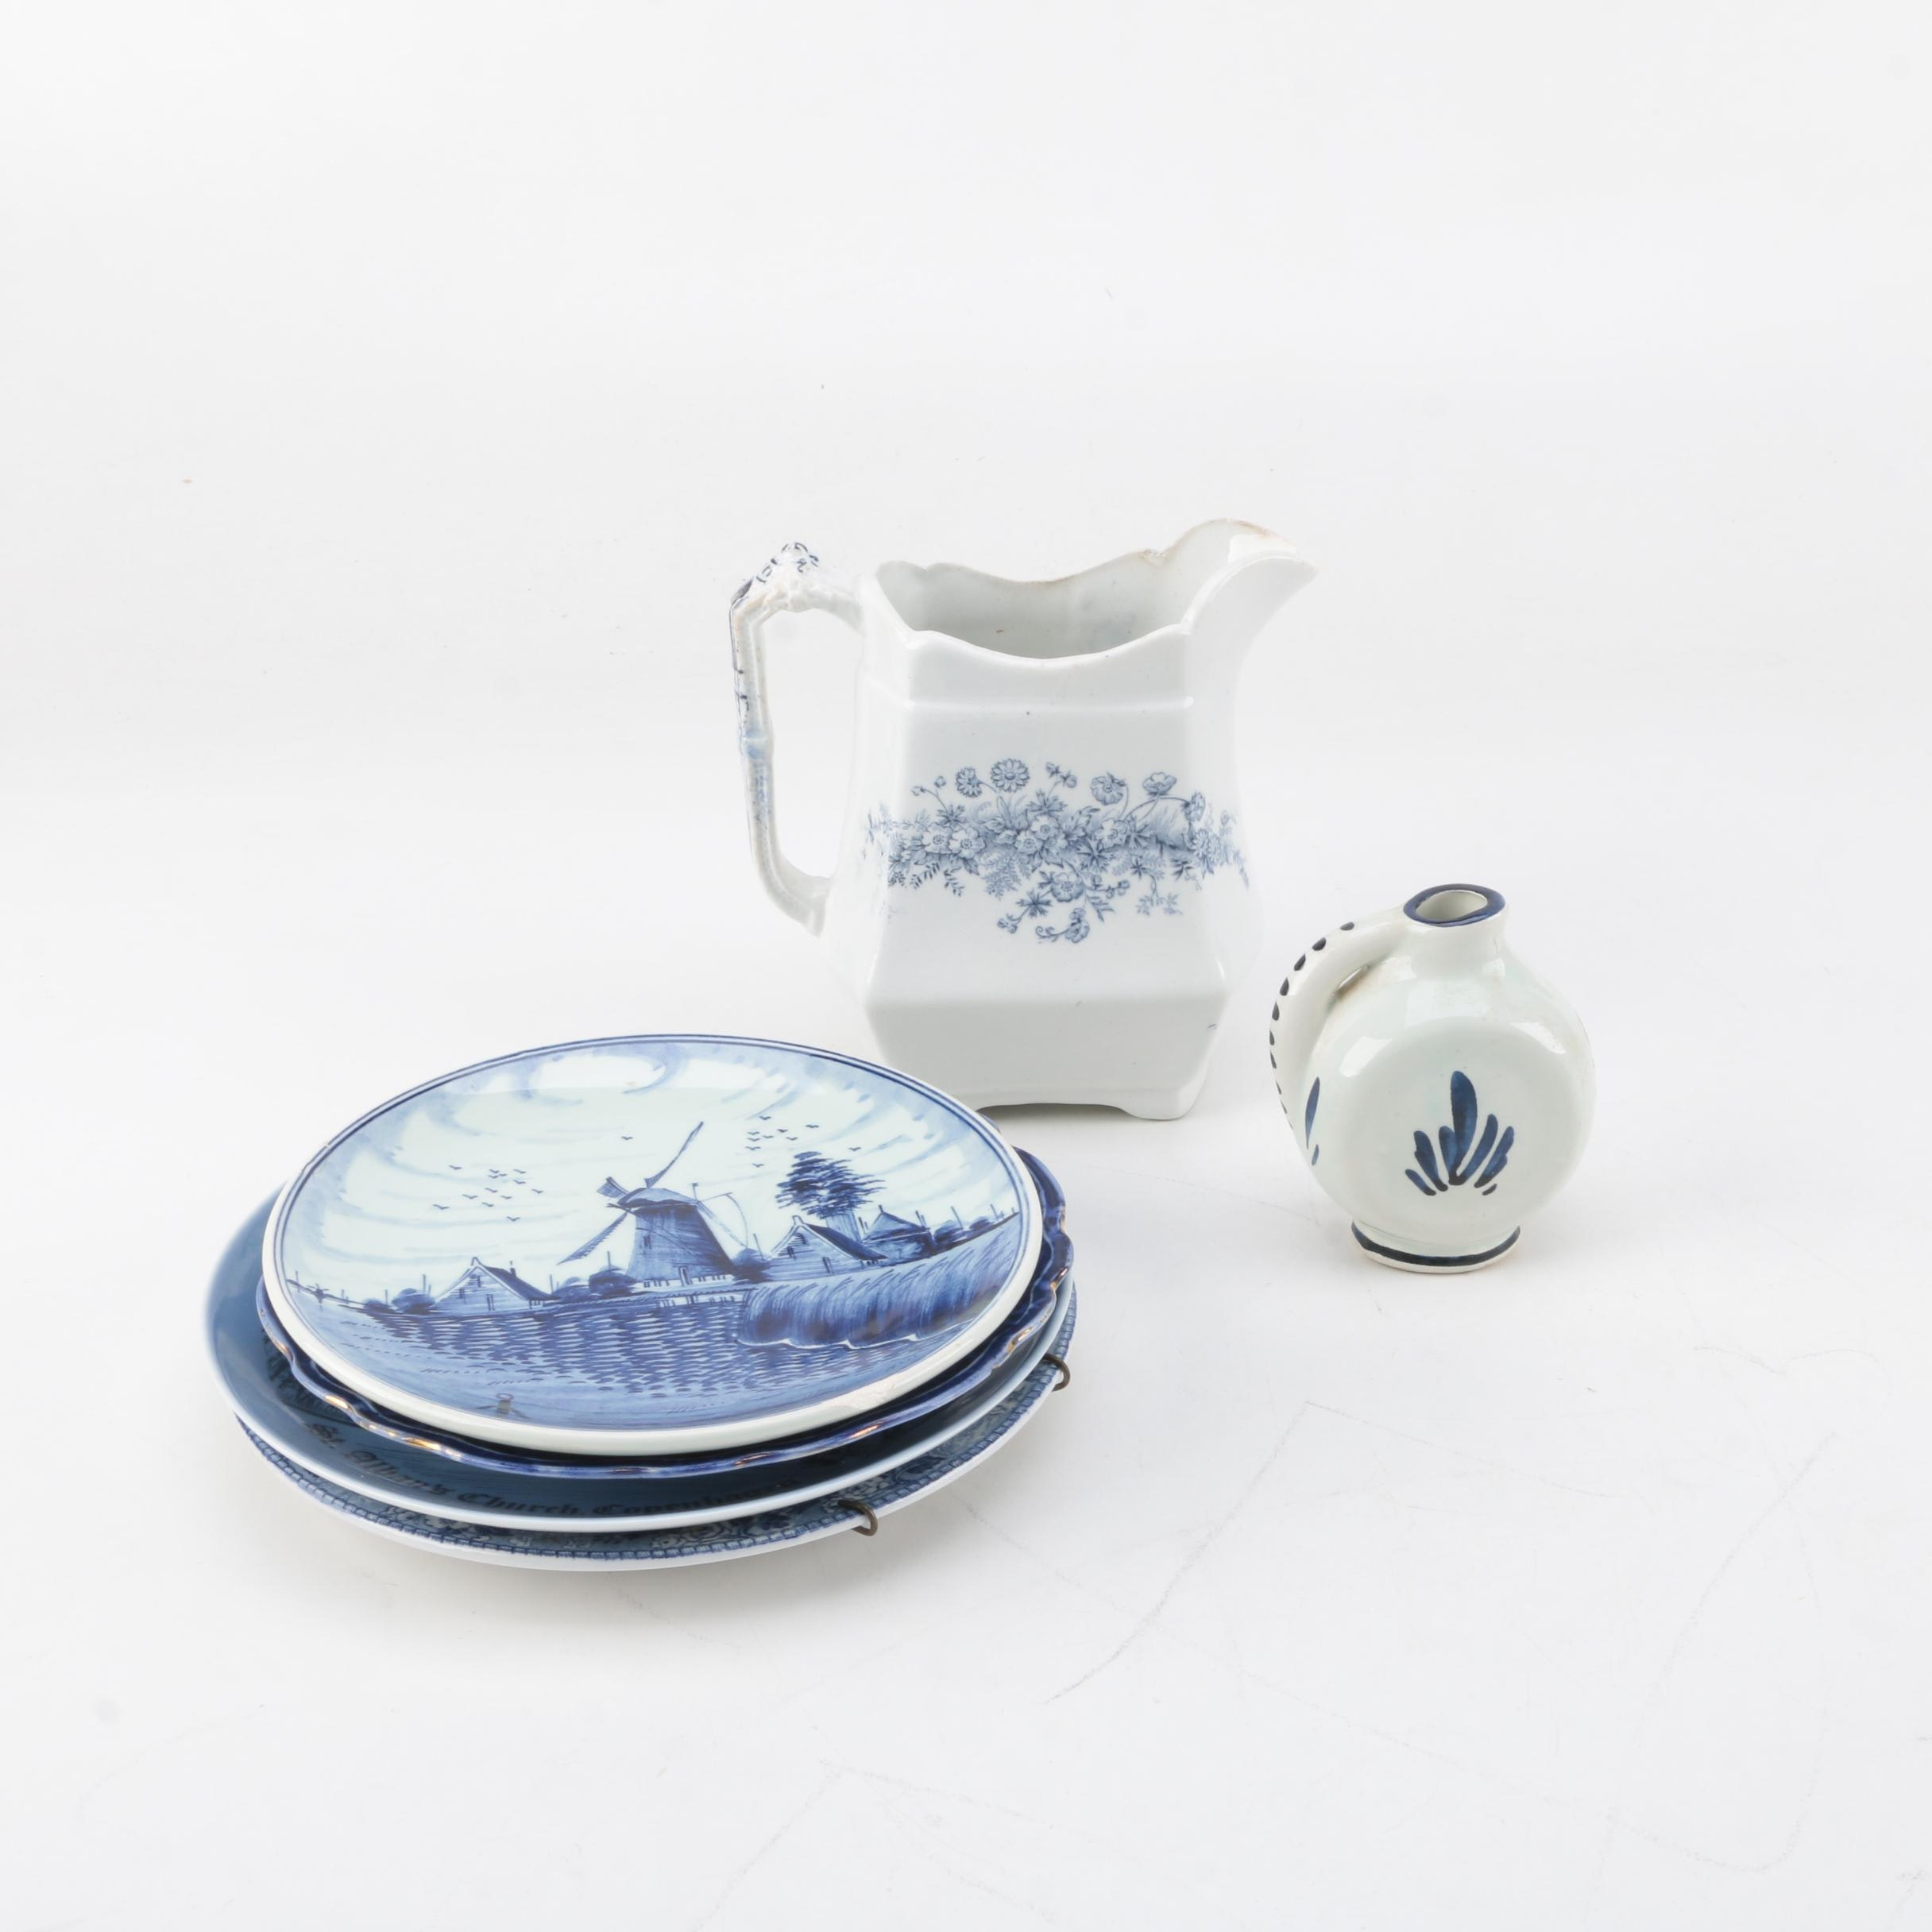 Ceramic and Porcelain Decorative Plates with Two Creamers